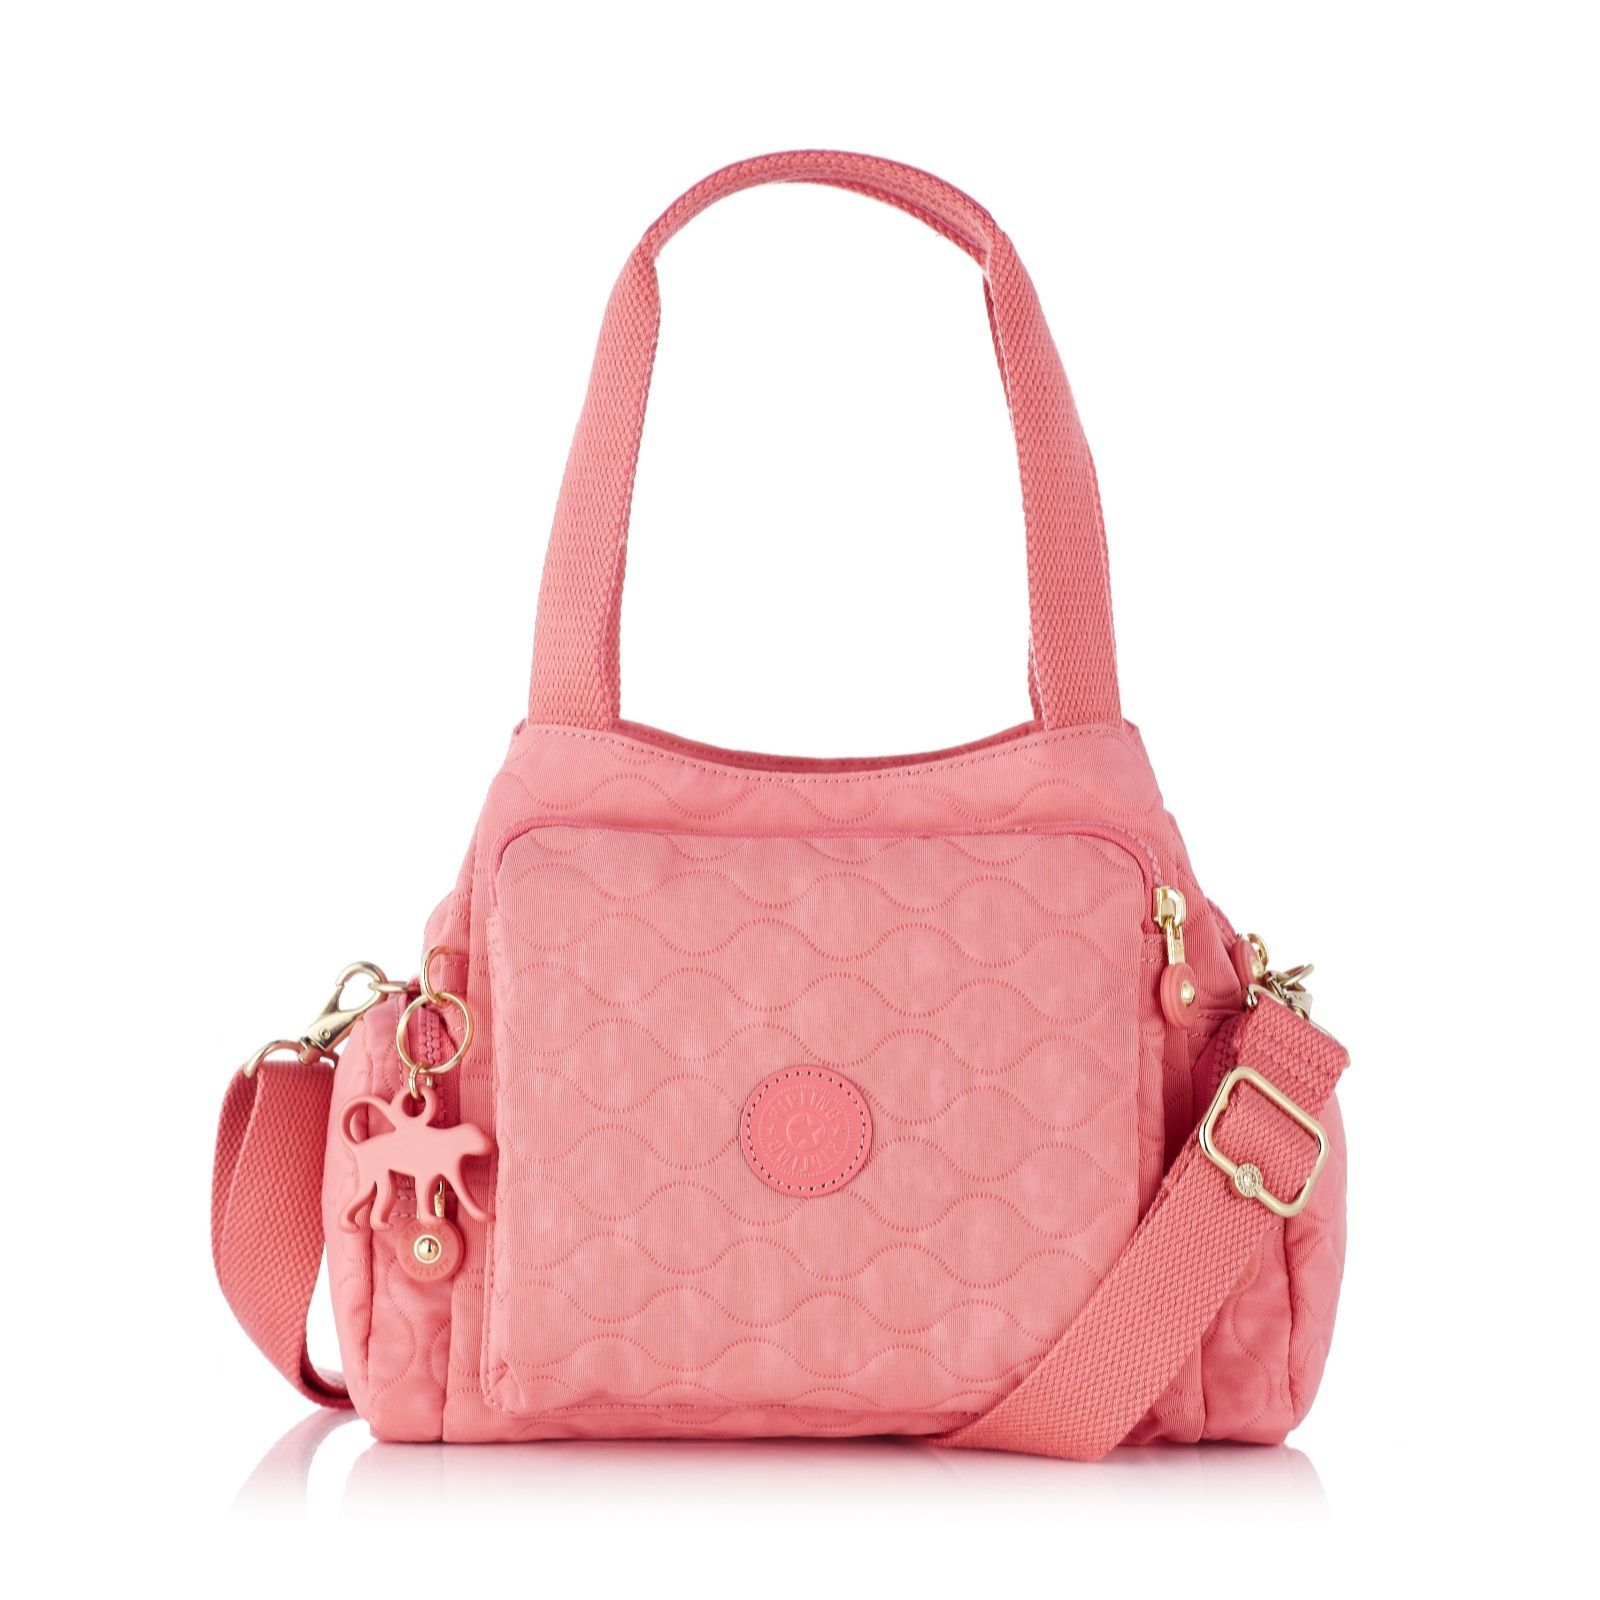 159208 Kipling Cyrille Premium Small Crossbody Bag With Removable Strap Qvc Price 67 00 Introductory 57 96 P 5 95 Or 3 Easy Pays Of 19 32